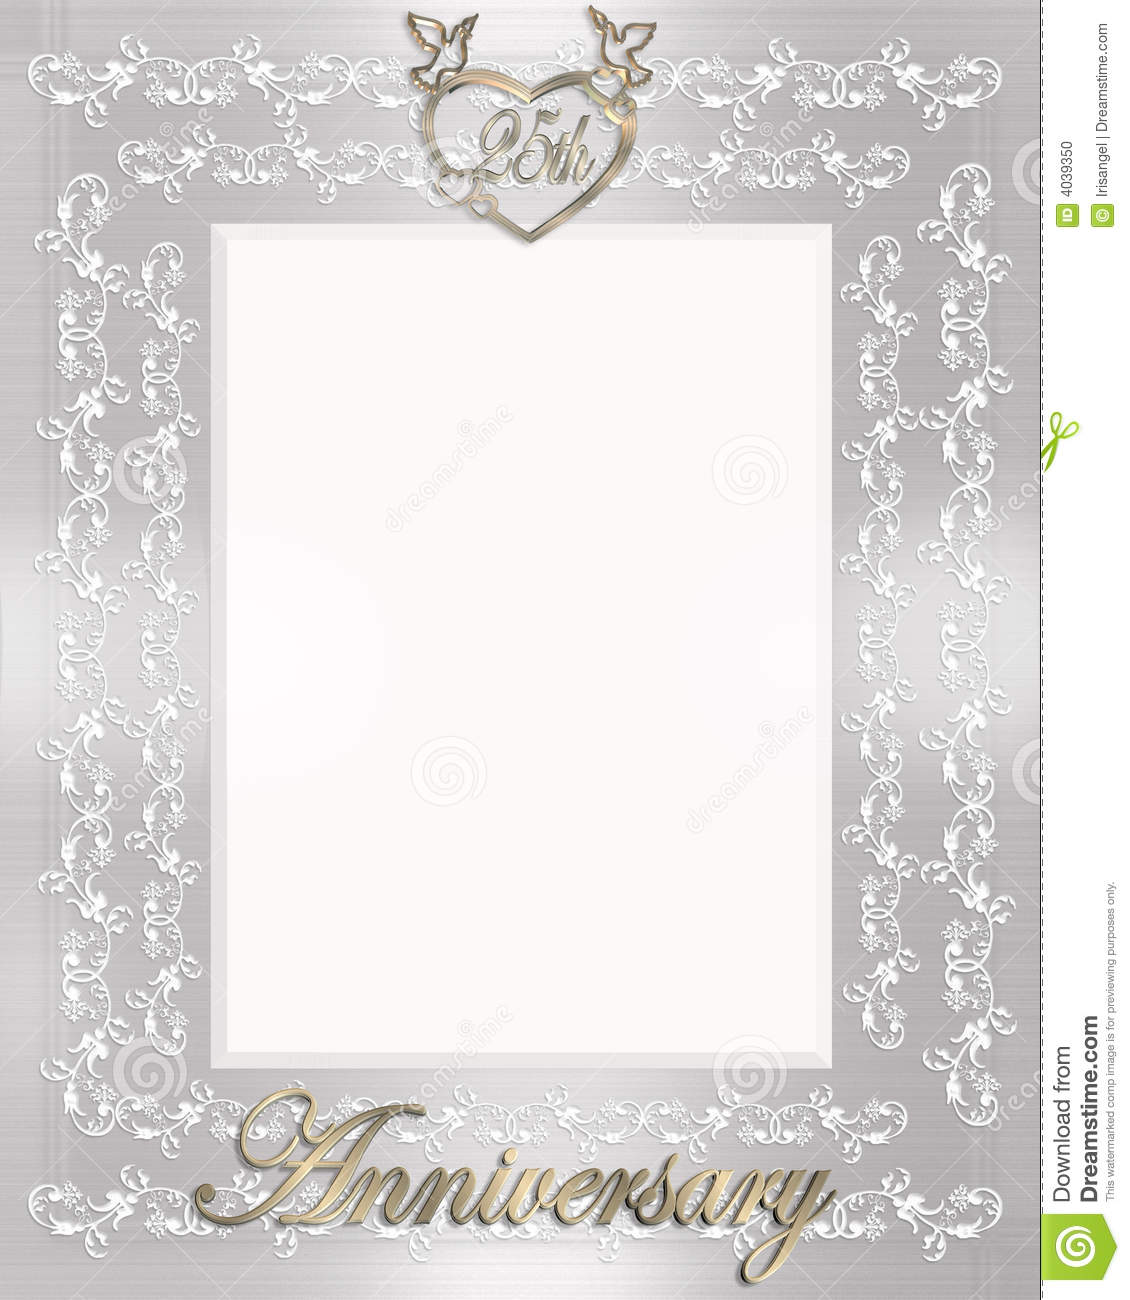 25th Wedding Anniversary Invitation Stock Illustration